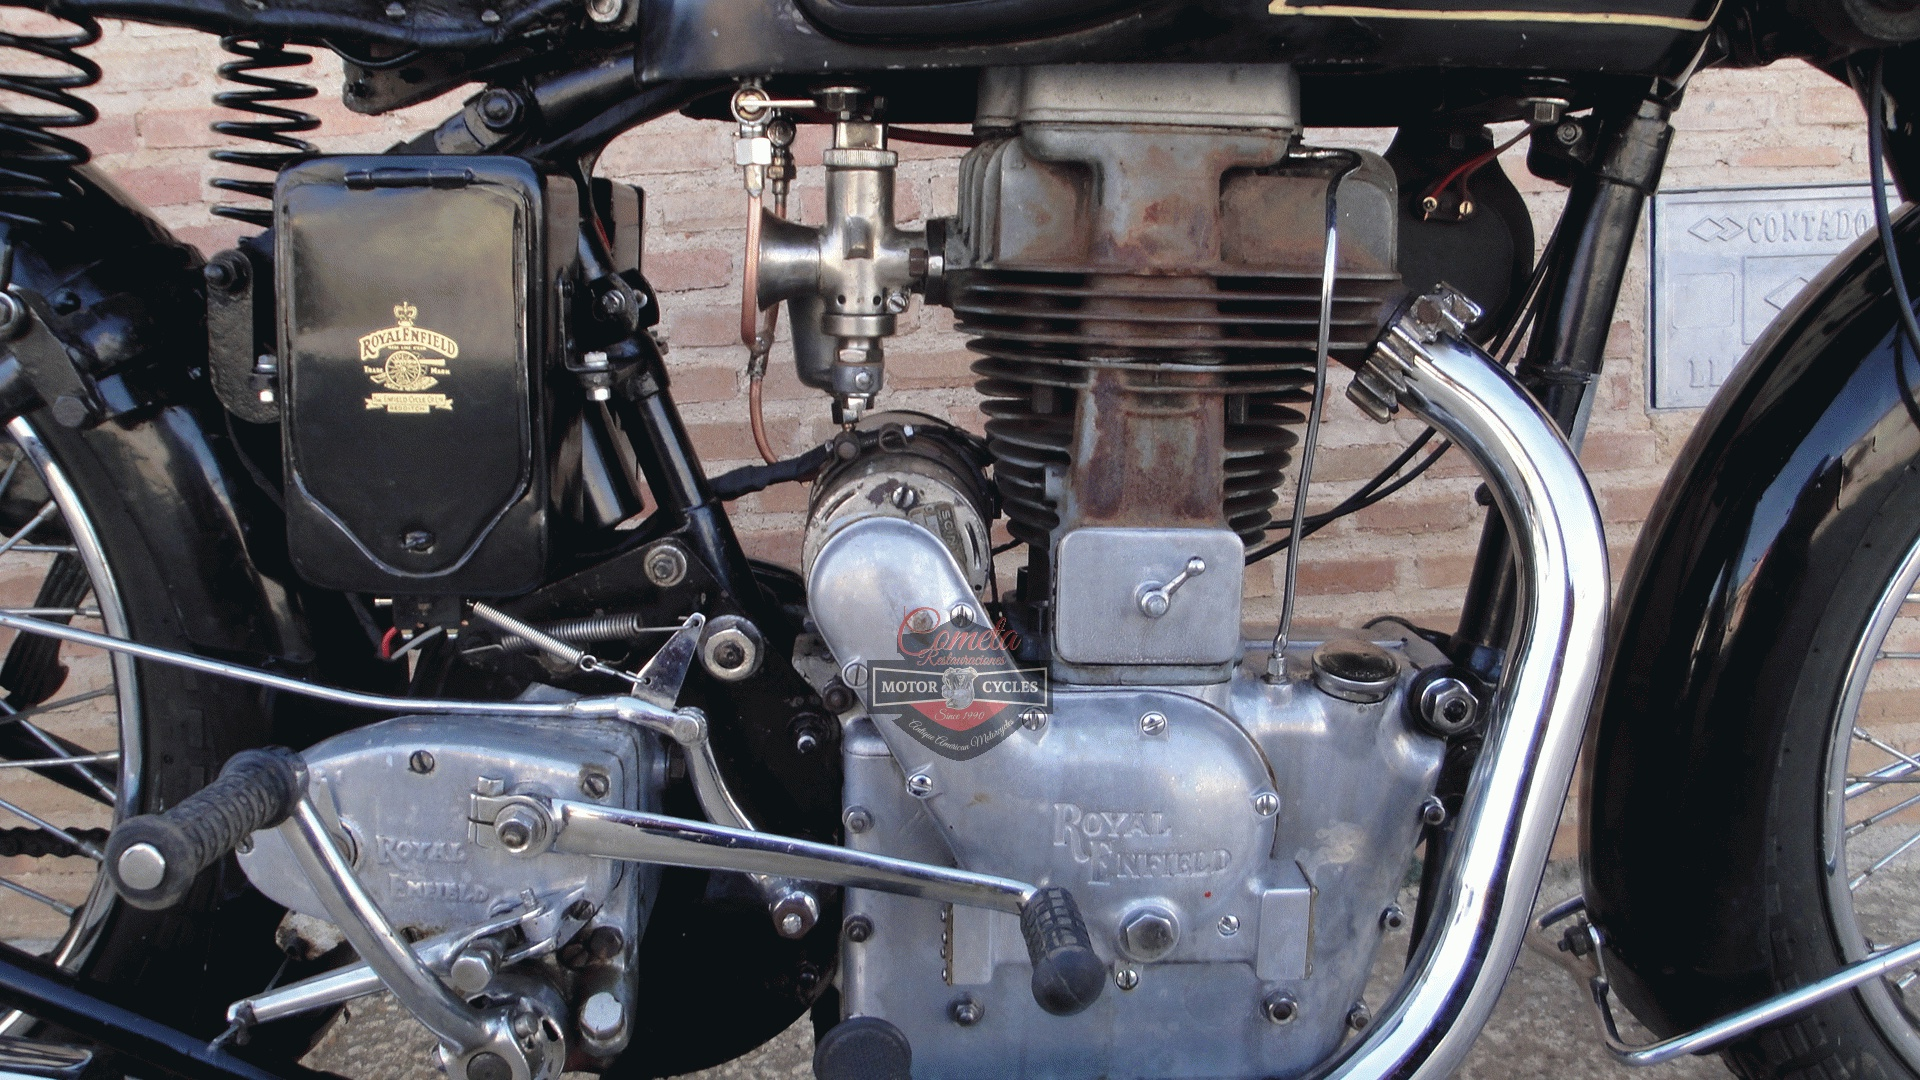 ROYAL ENFIELD J 500 OHV AÑO 1936  CON SIDECAR